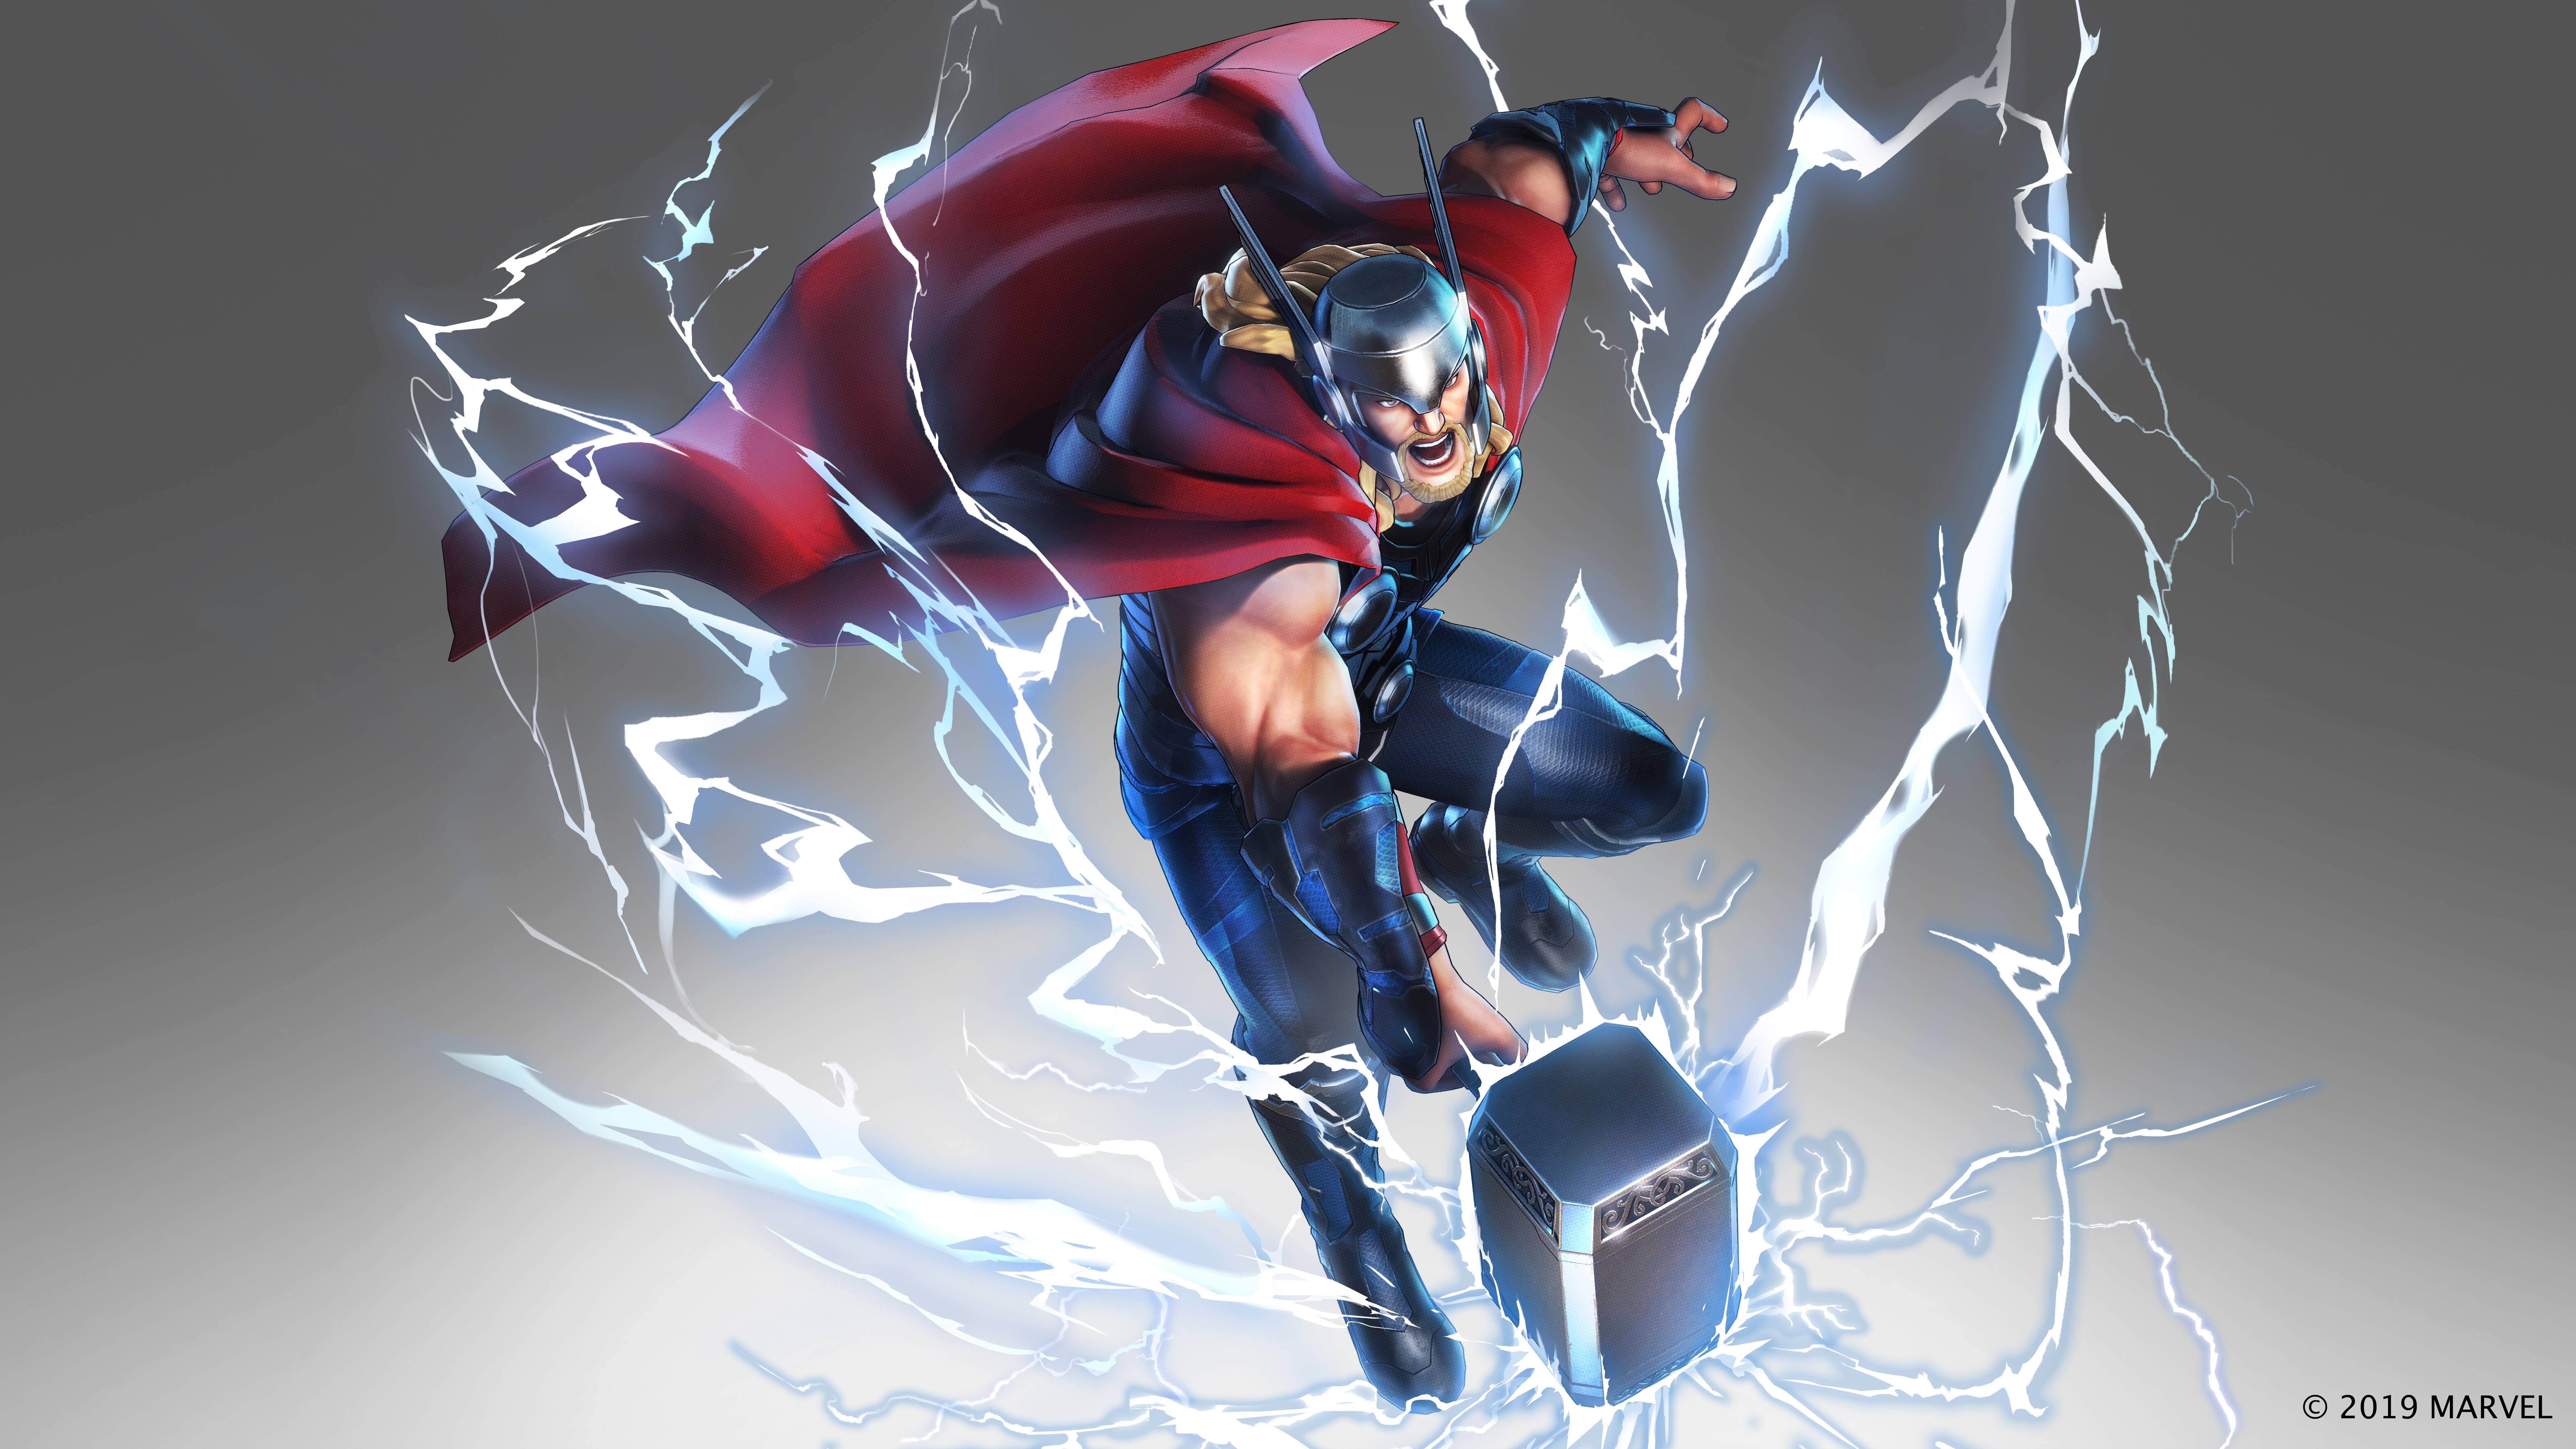 7680x4320 Marvel Ultimate Alliance 3 2019 Thor 8k HD 4k Wallpapers